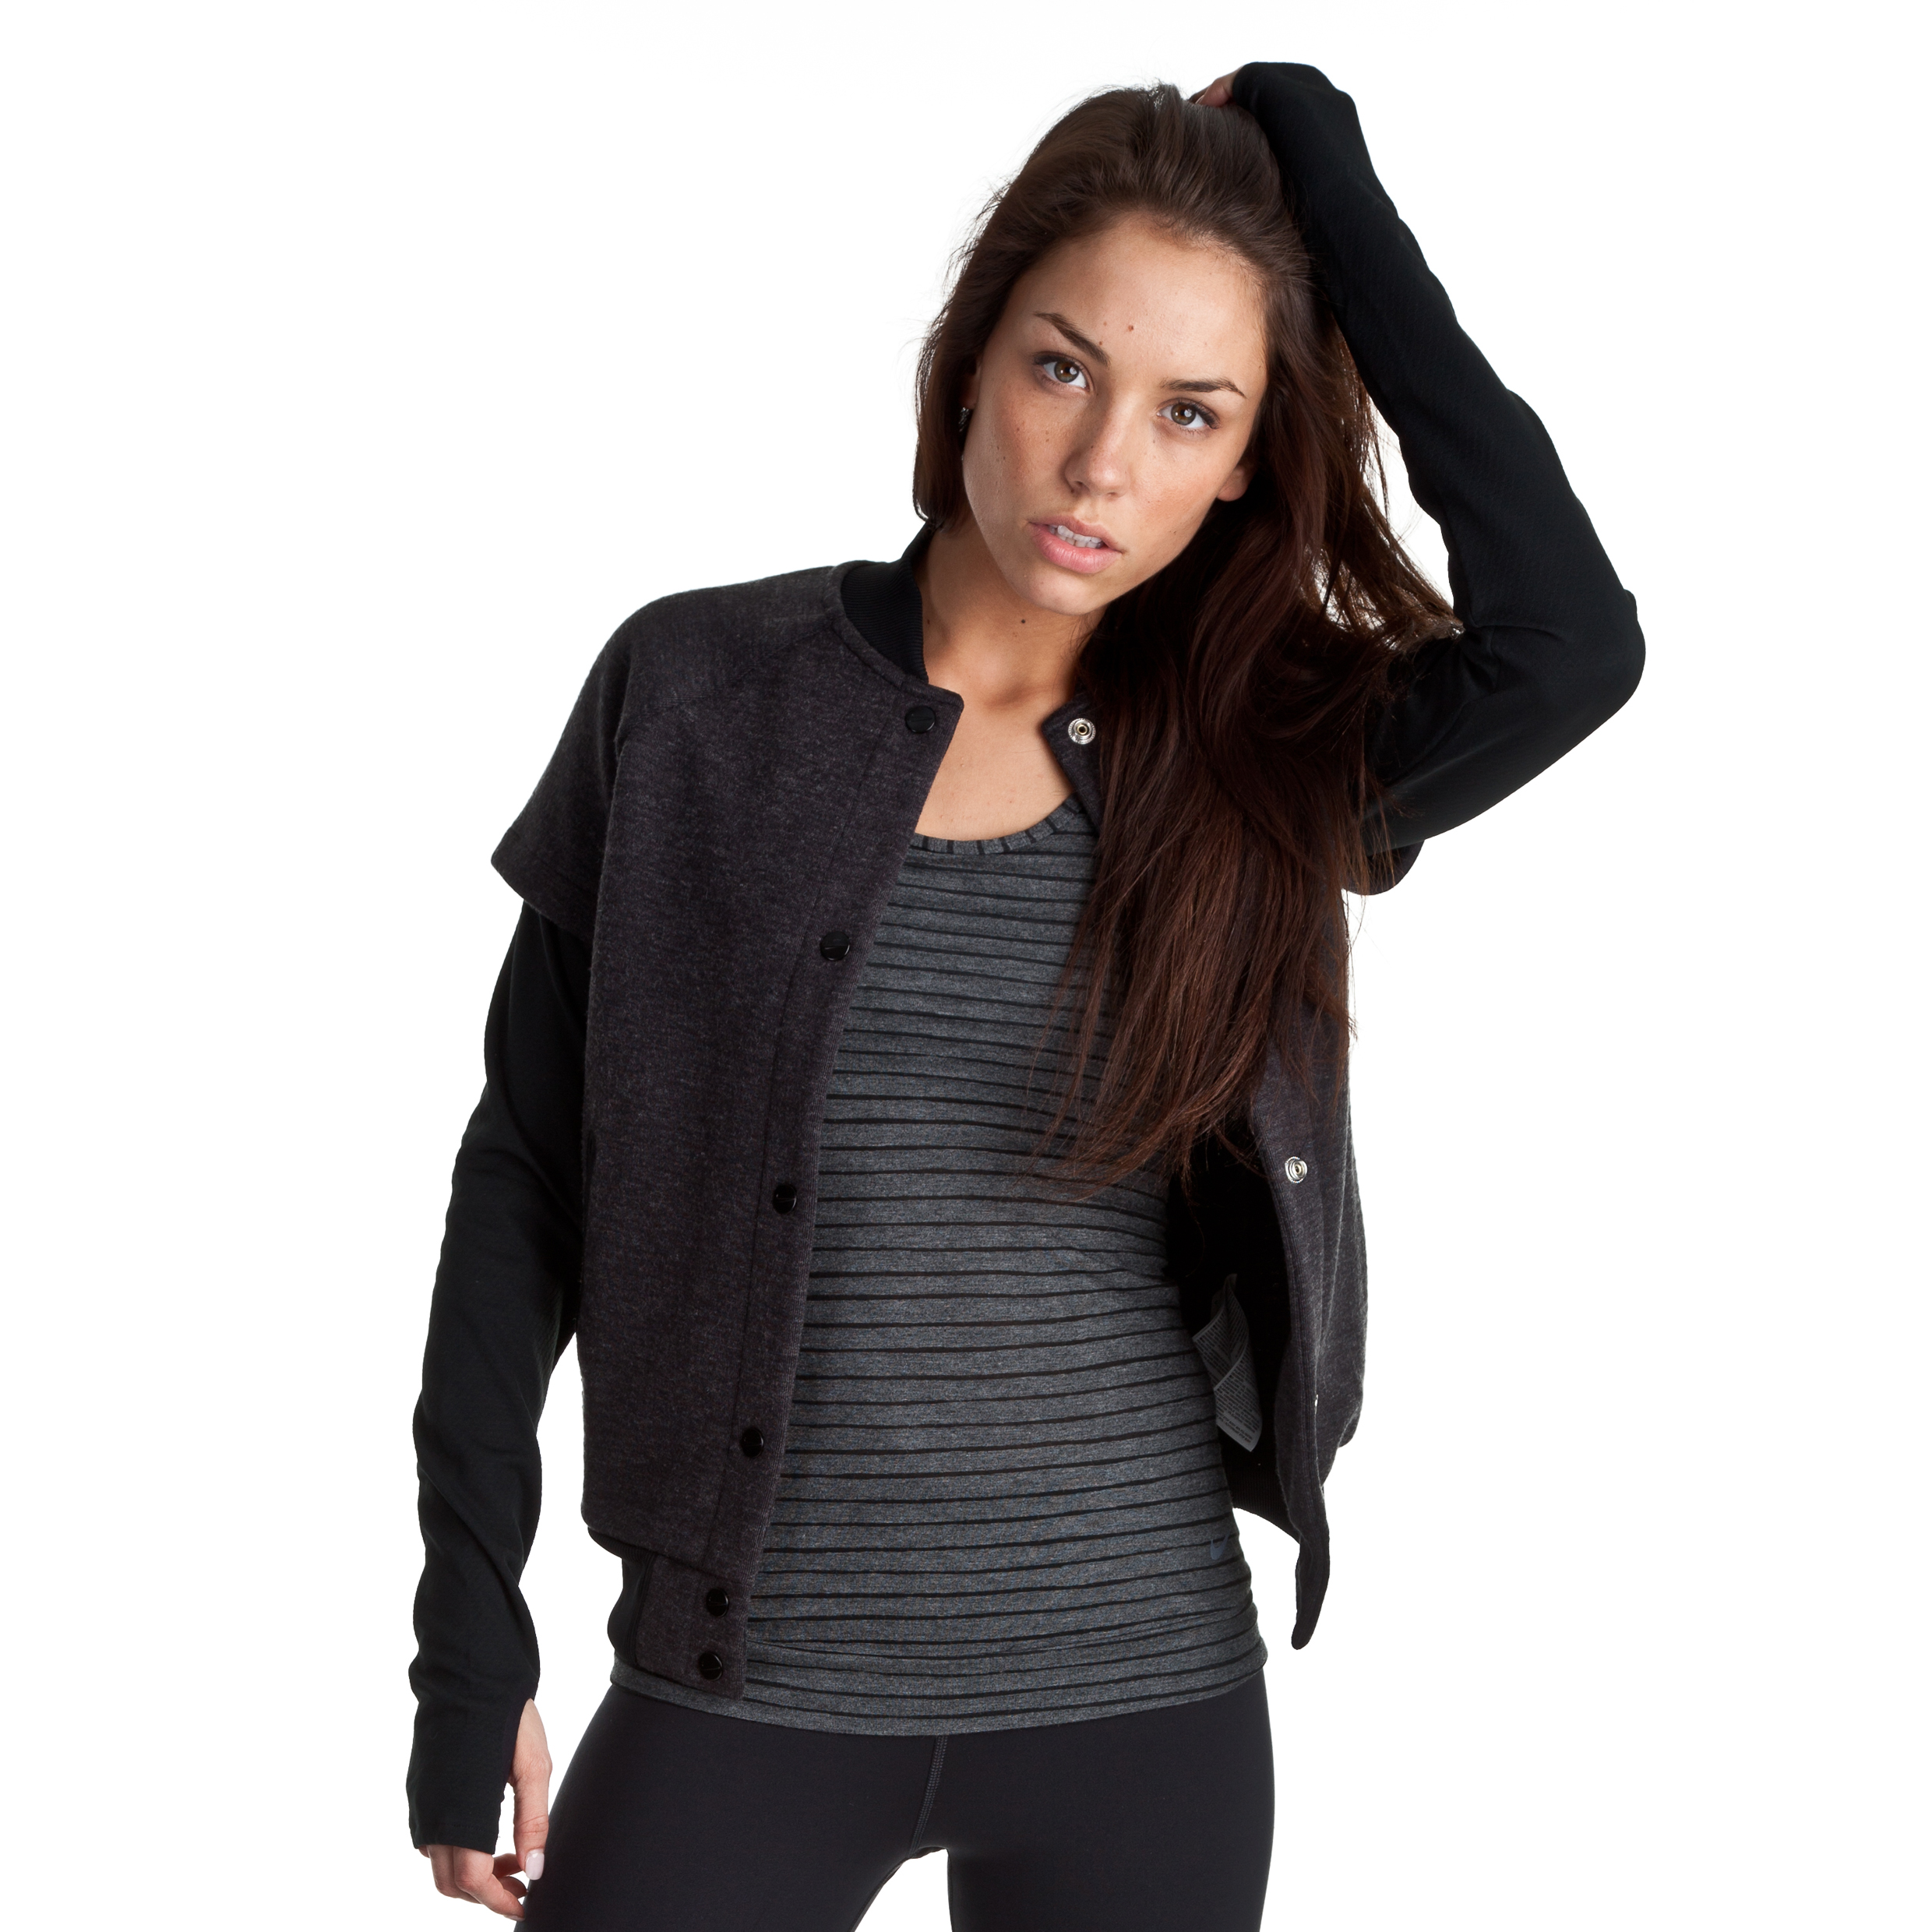 Nike Sphere Bomber Jacket- Black Heather/Black/Black - Womens